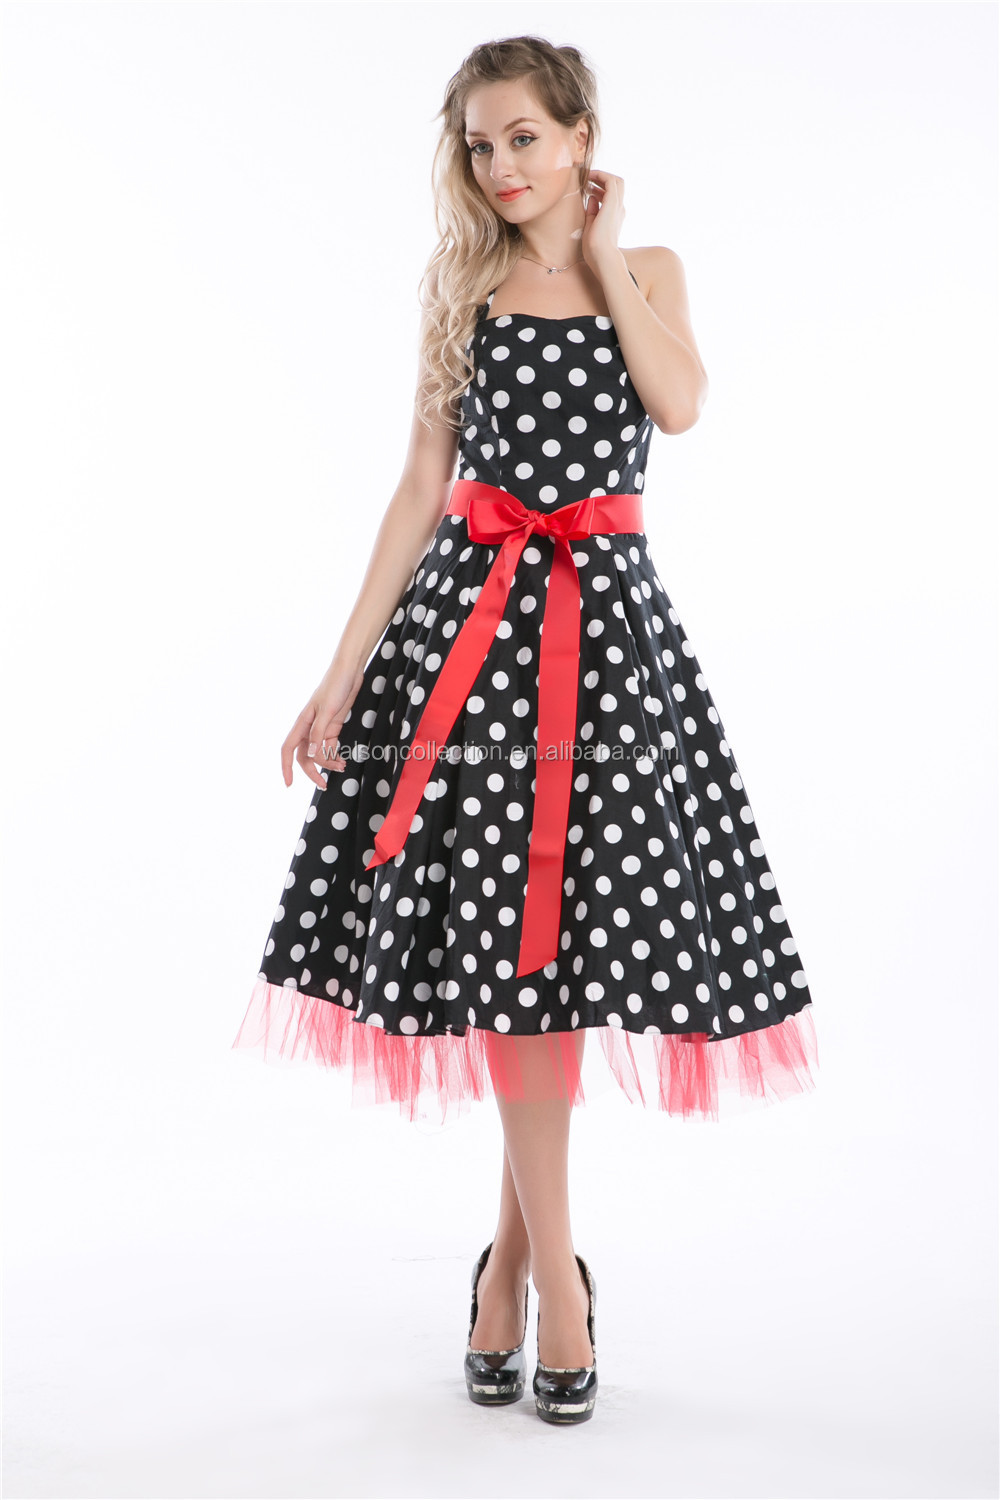 Spring Summer Women Elegant Pearl Waist Halter Dress Big Swing Skirt Color with red dot with red free belt